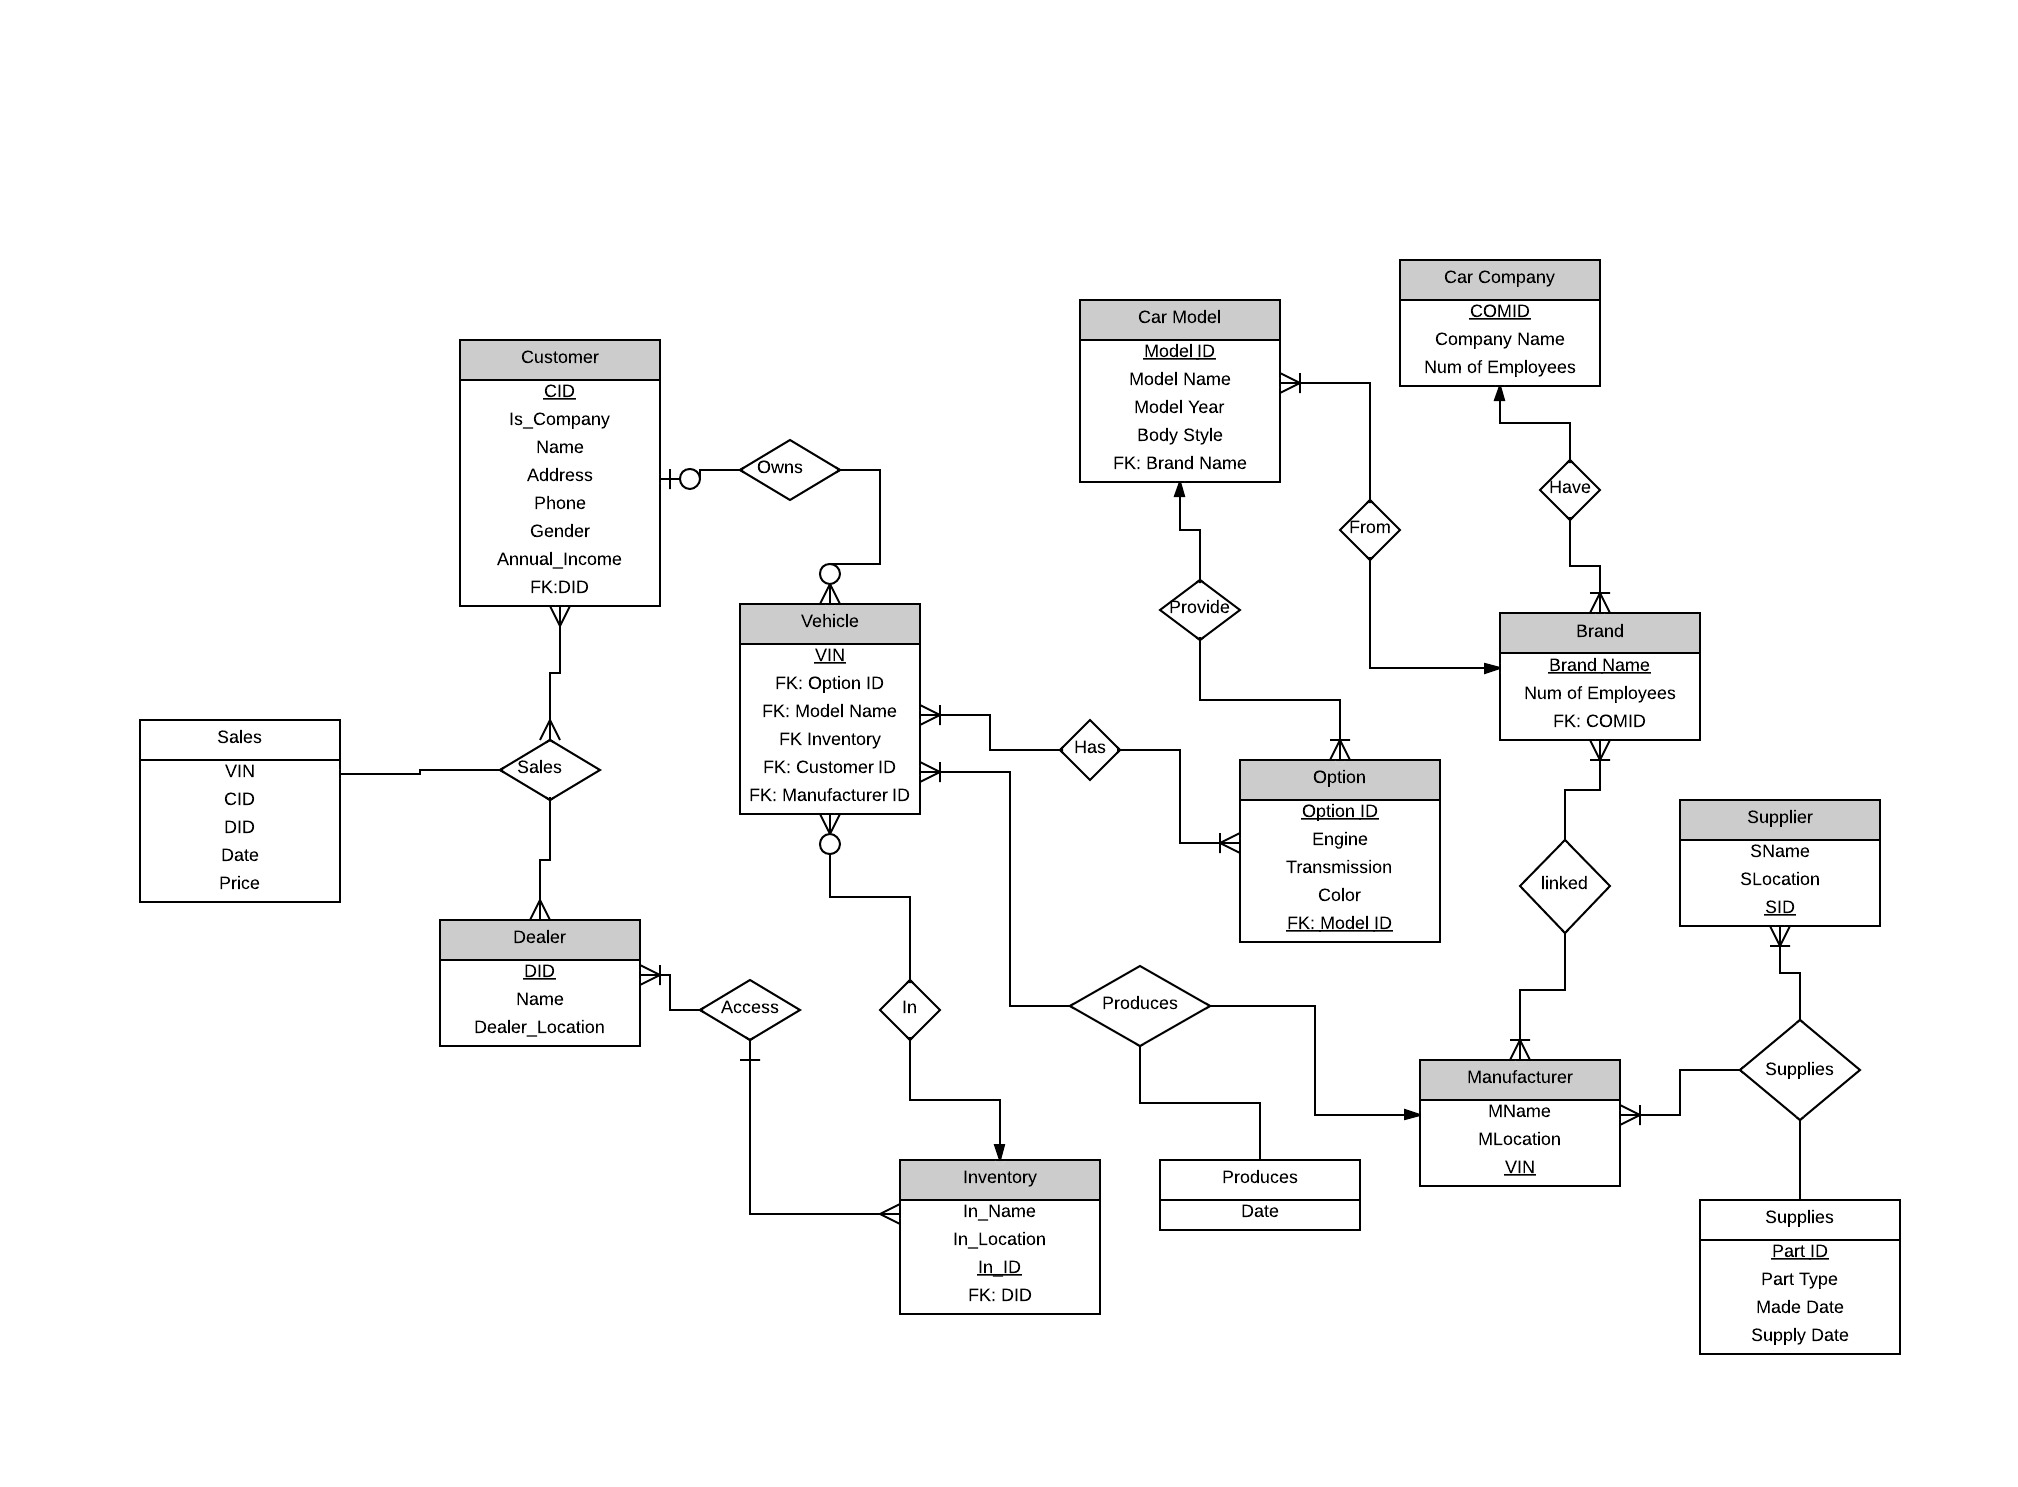 Need Help On An Er Diagram For An Automobile Company - Stack regarding Er Diagram For Company Database